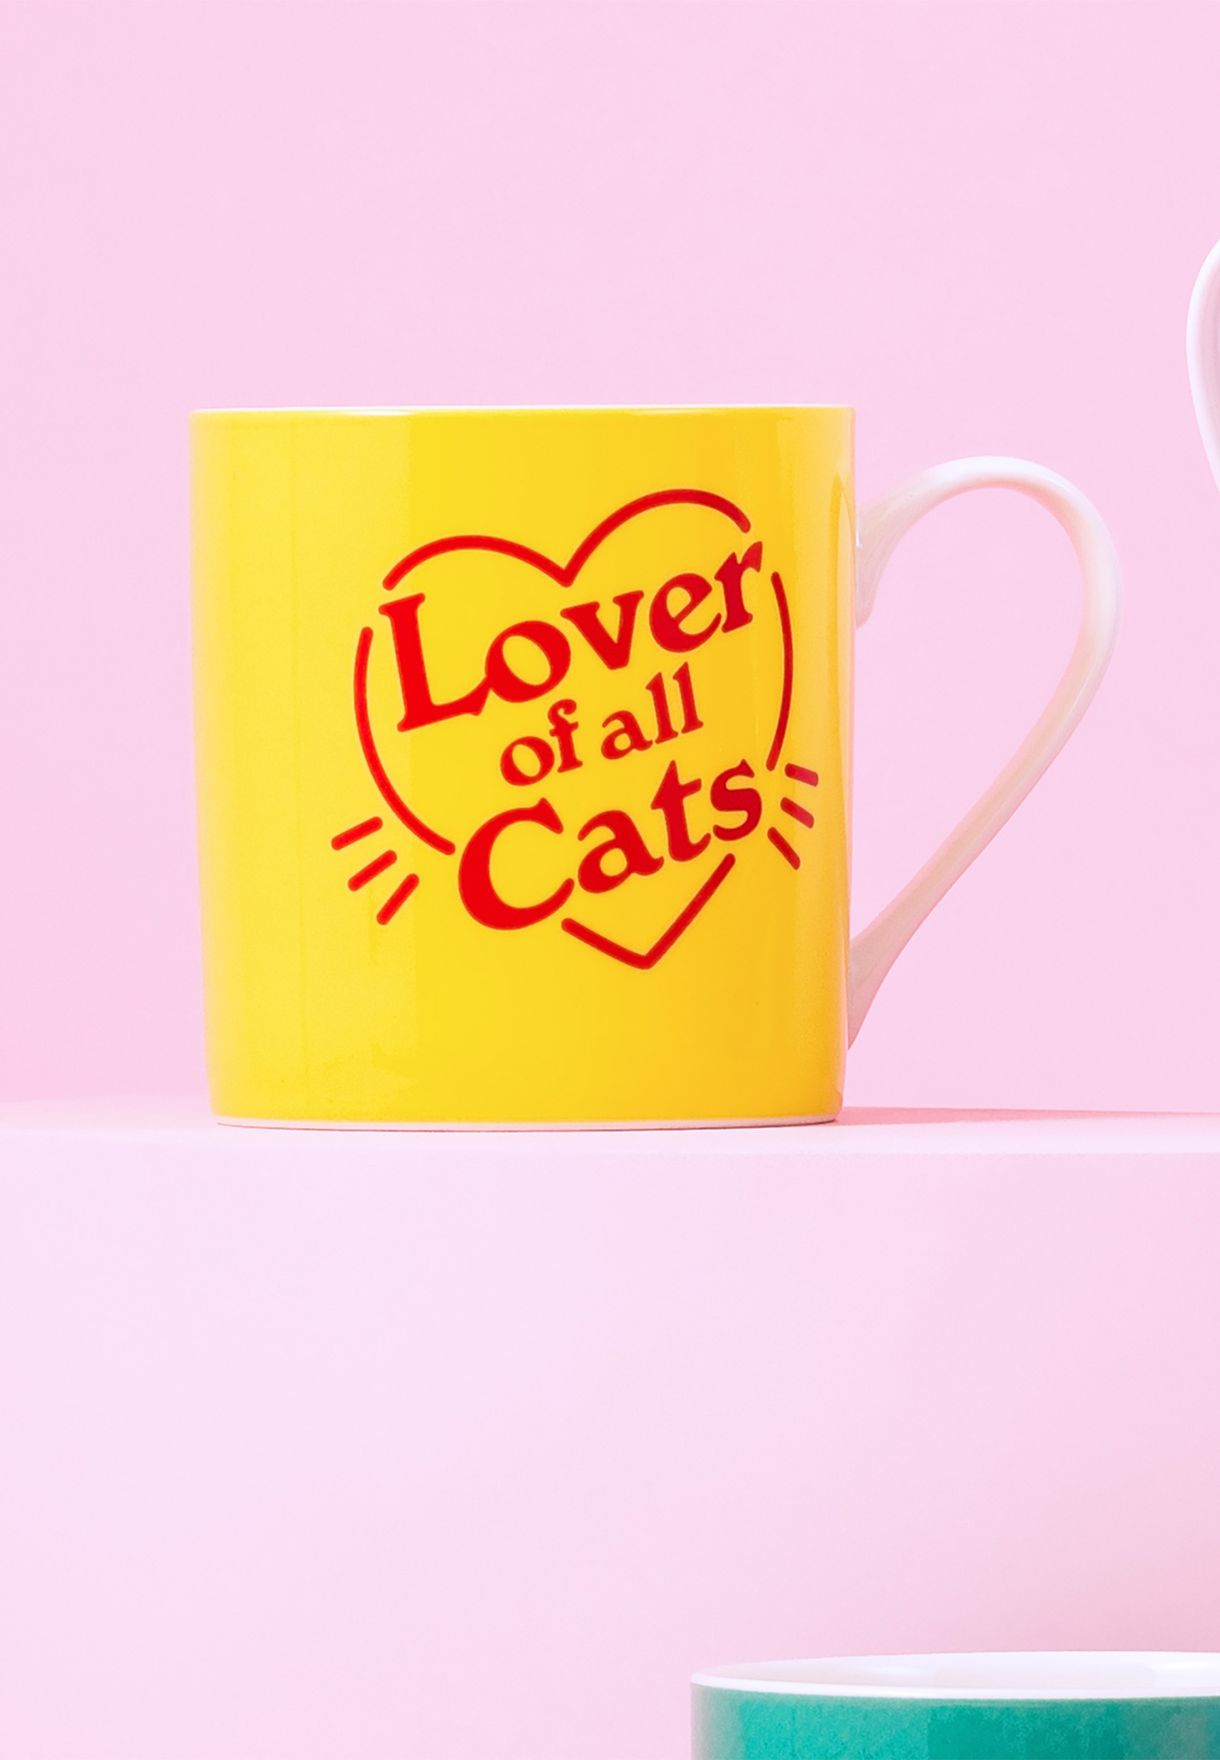 Love Of All Cat's Ceramic Mug